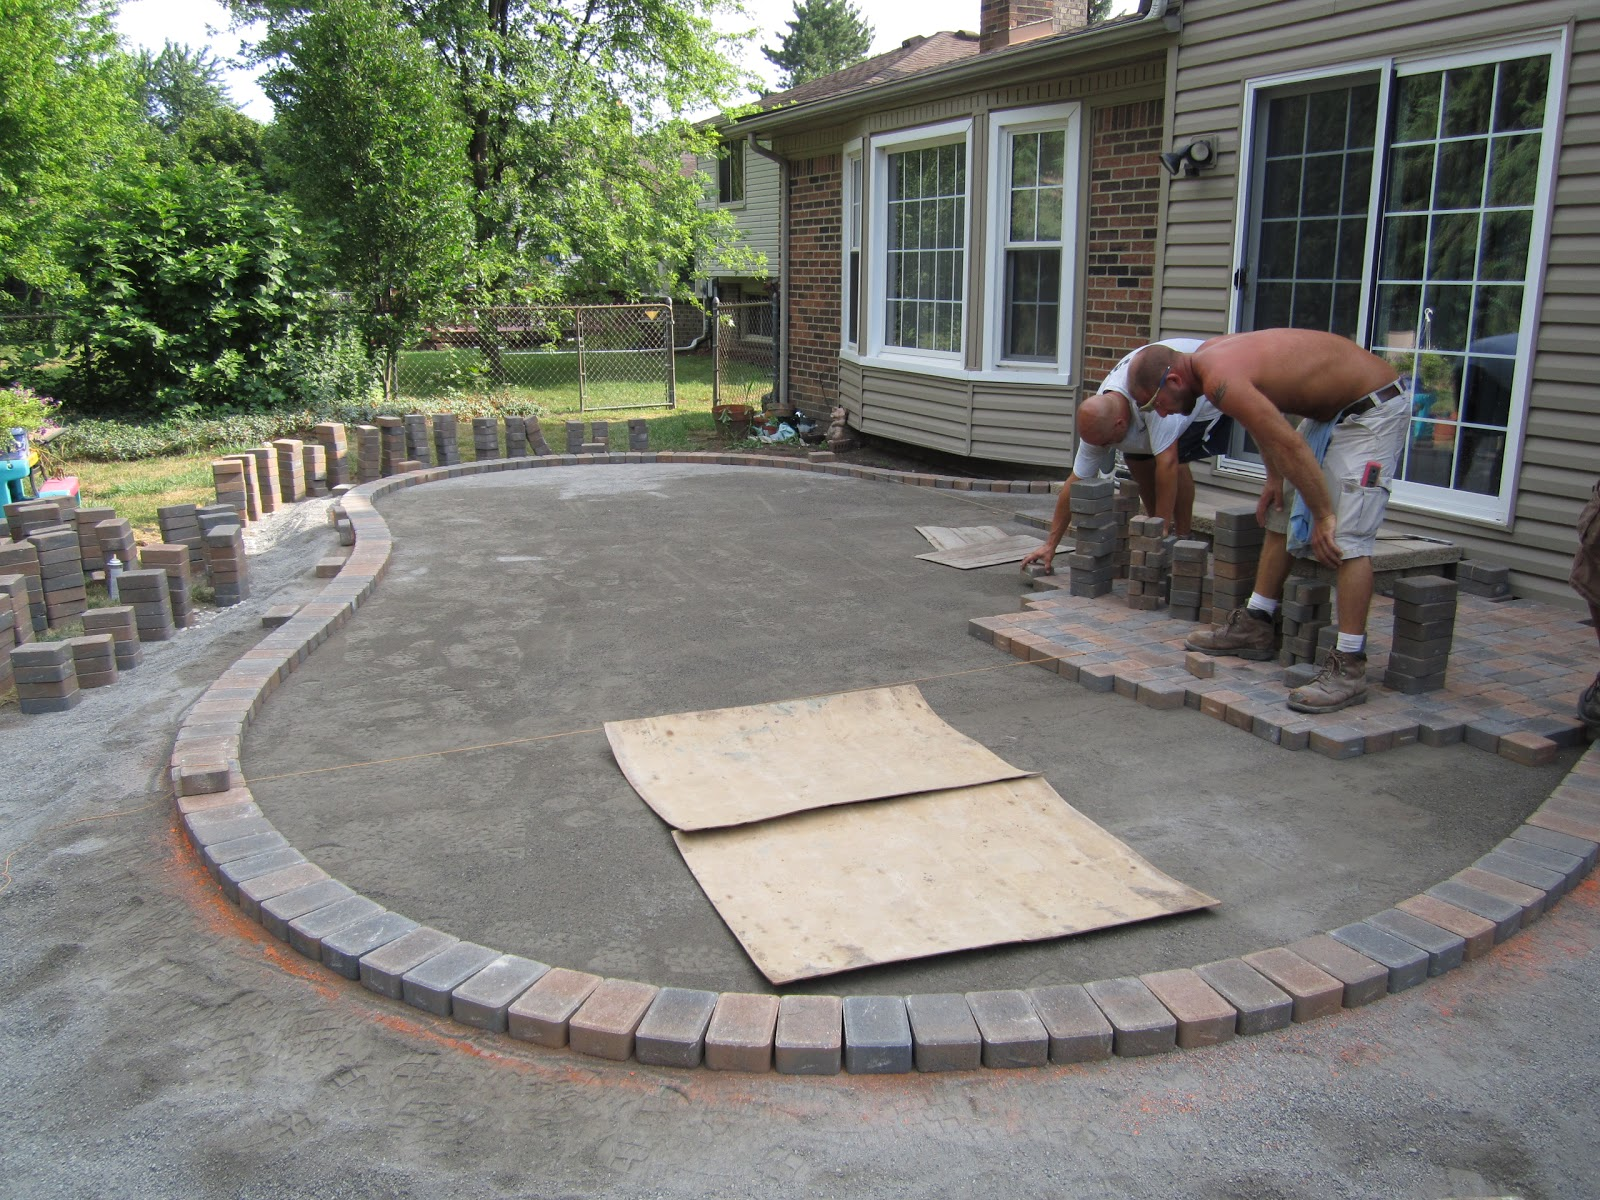 Brick Paver Patio Ideas | Patio Design Ideas